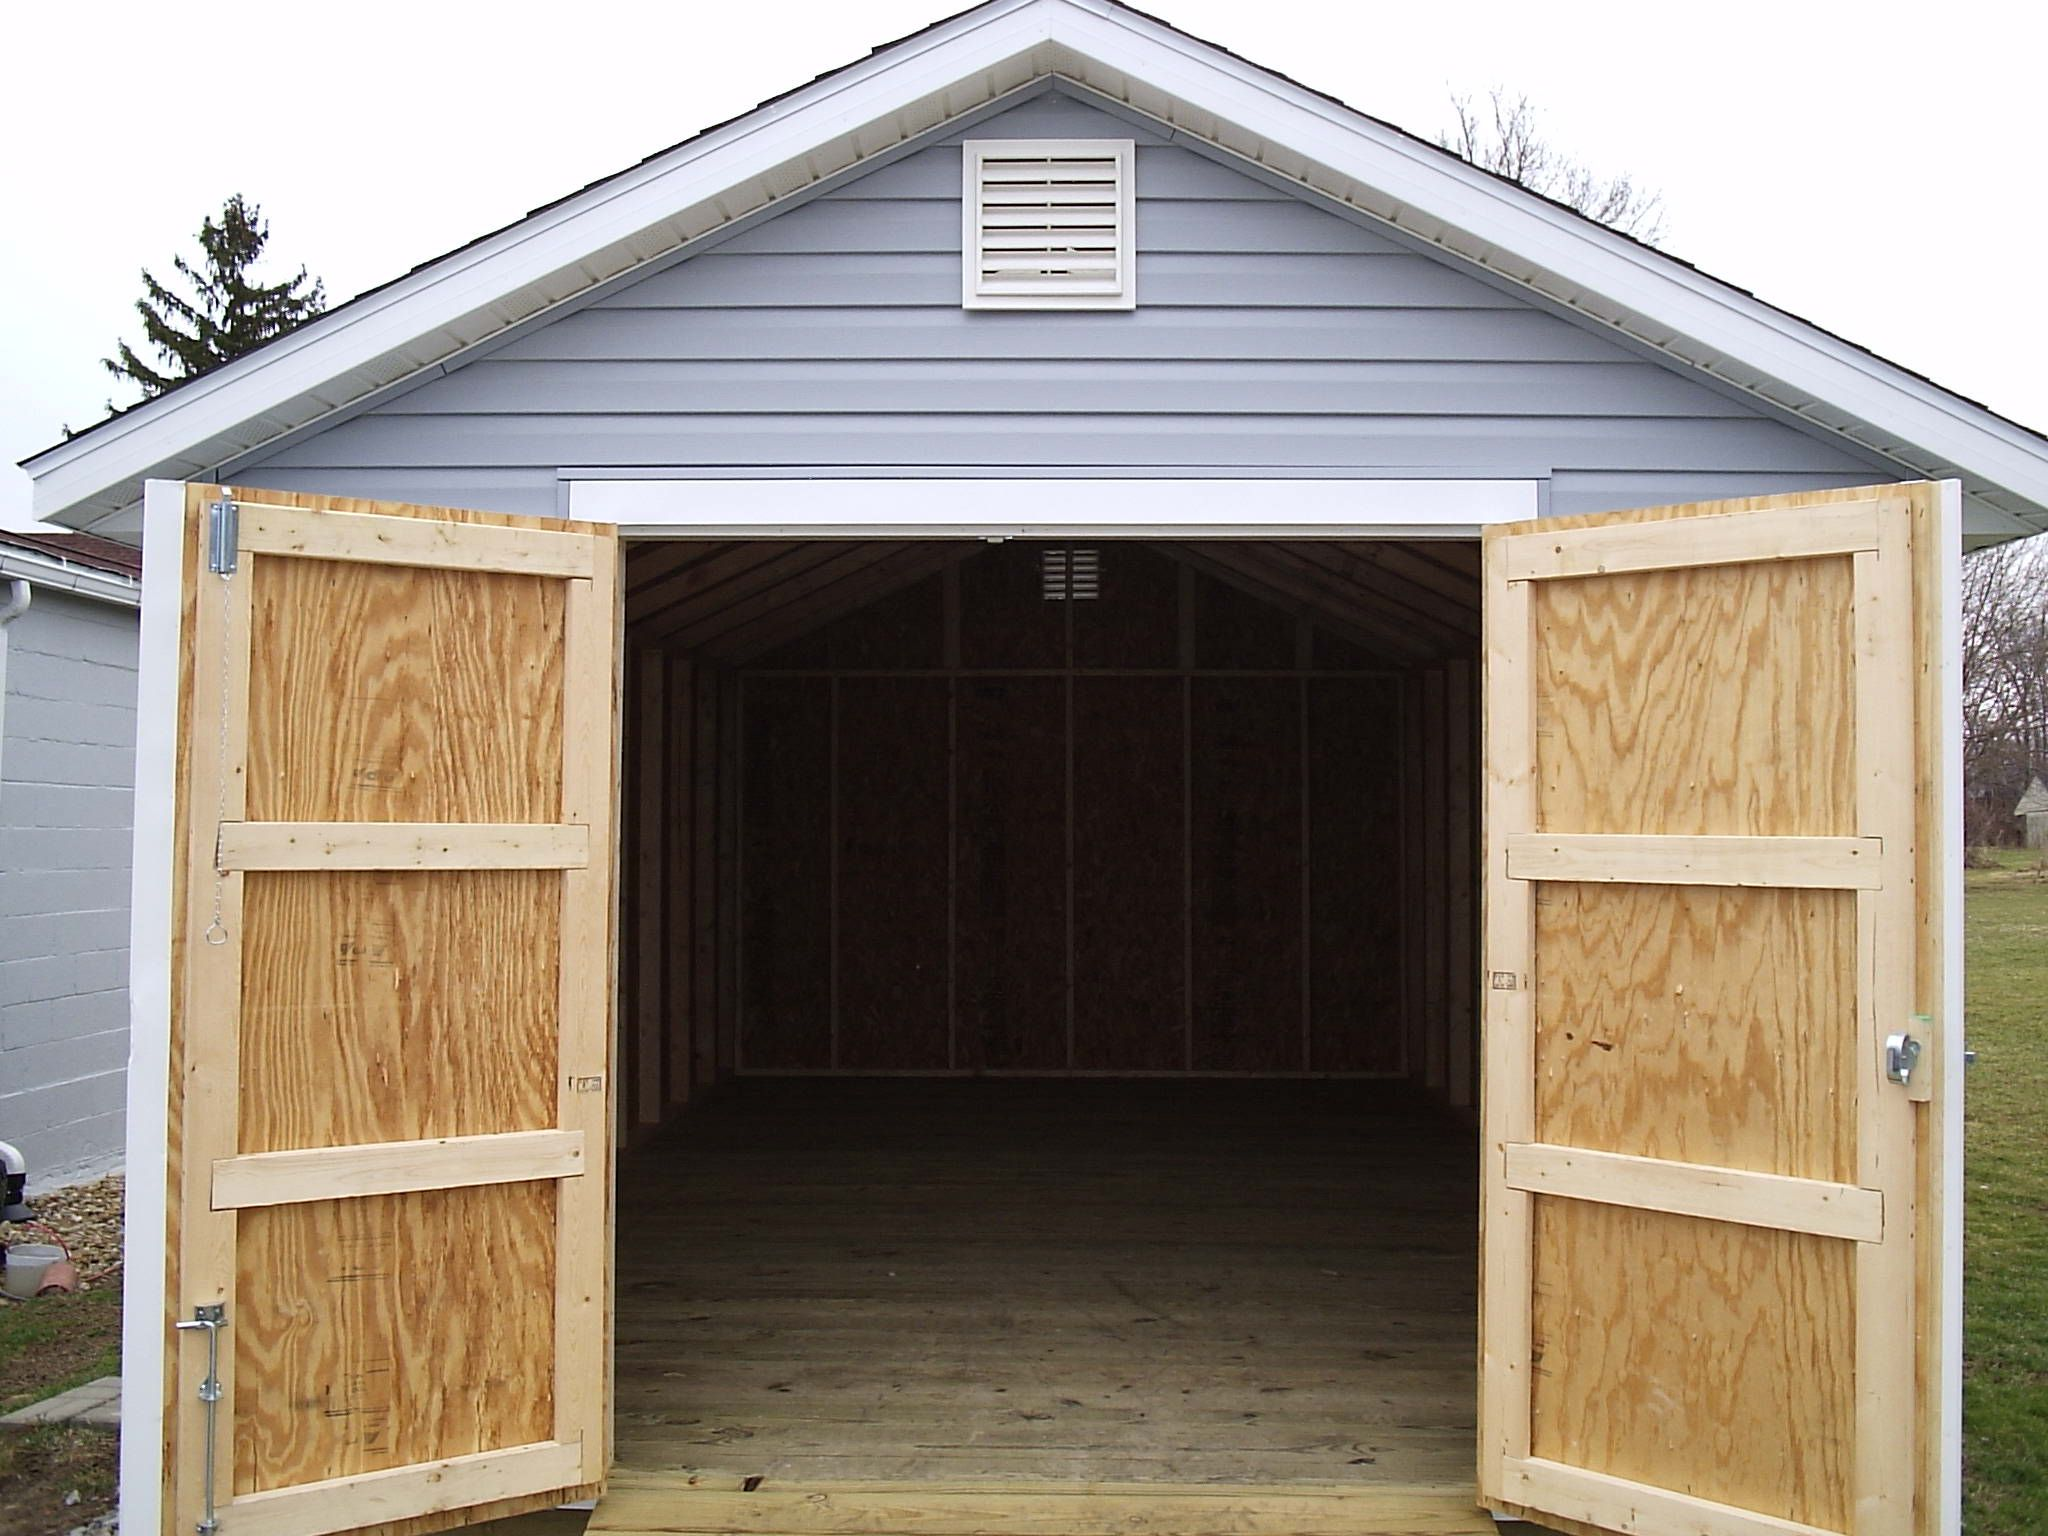 Shed Doors Deere Shed Pinterest Shed Doors Shed And Doors